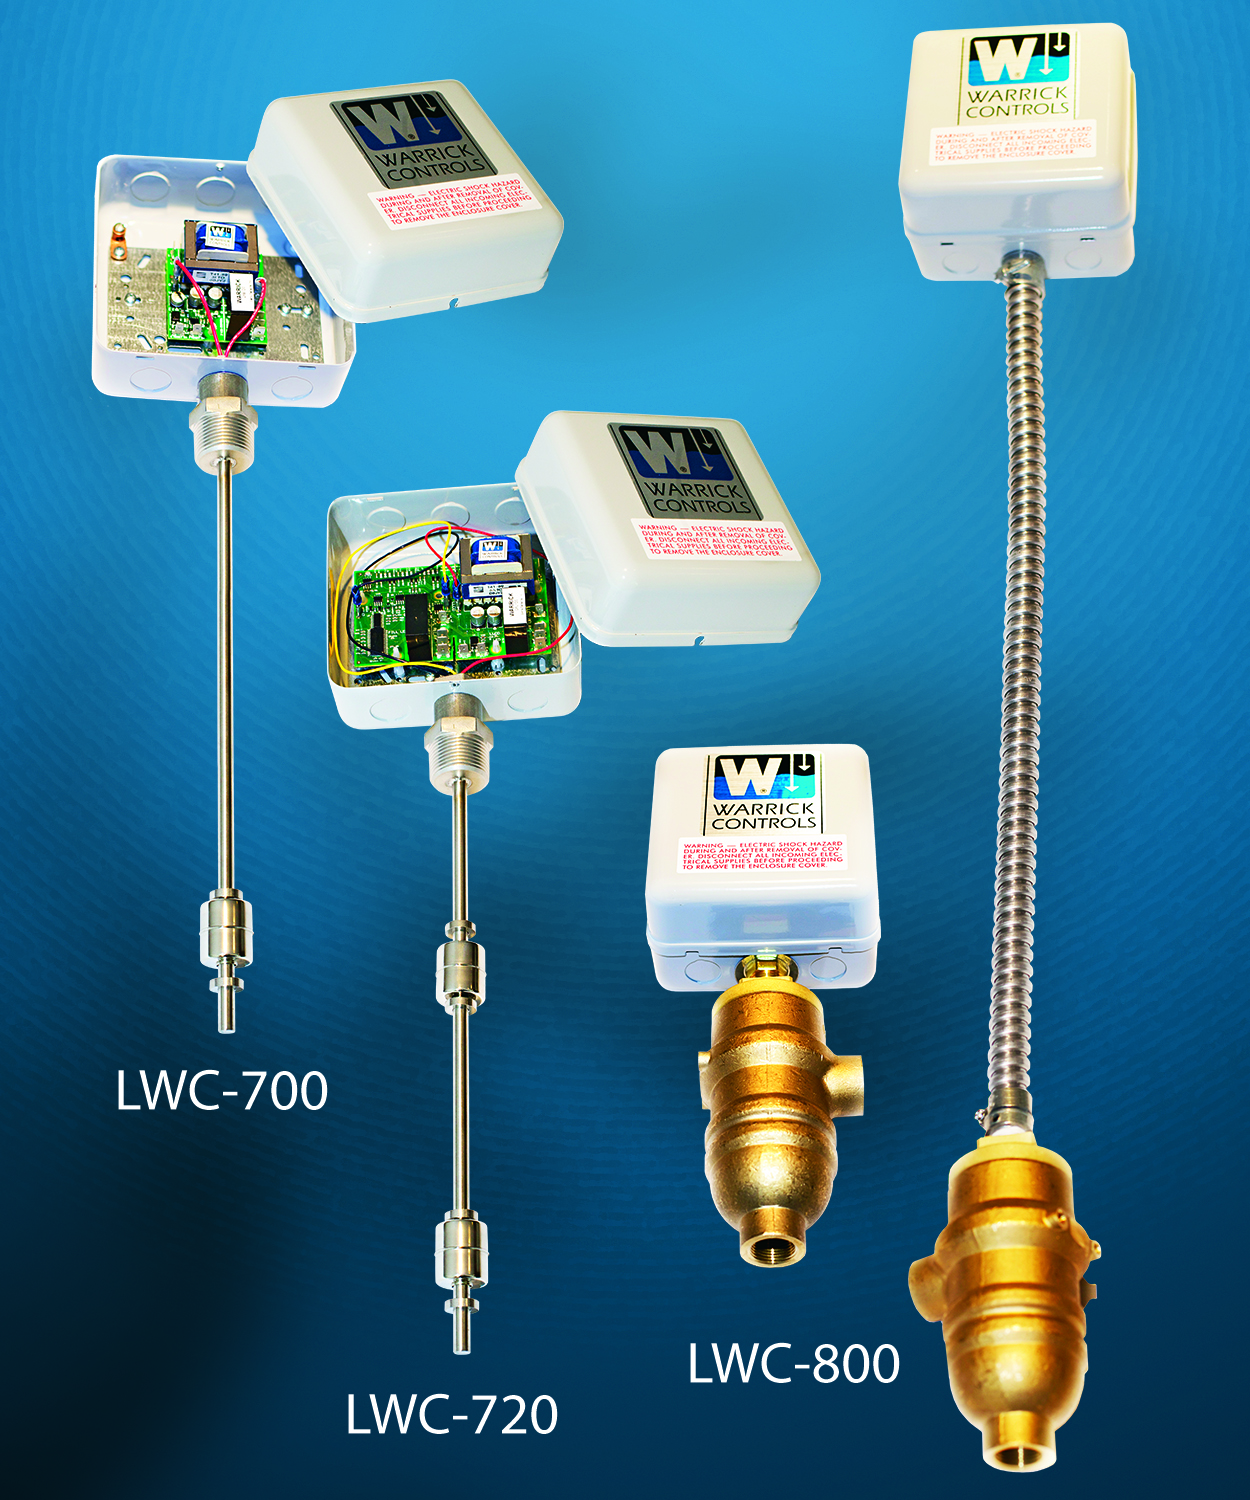 New Low Water Cutoff Devices Provide Compact Protection For Boilers Electronic Pendulum Circuit And Steam Generators